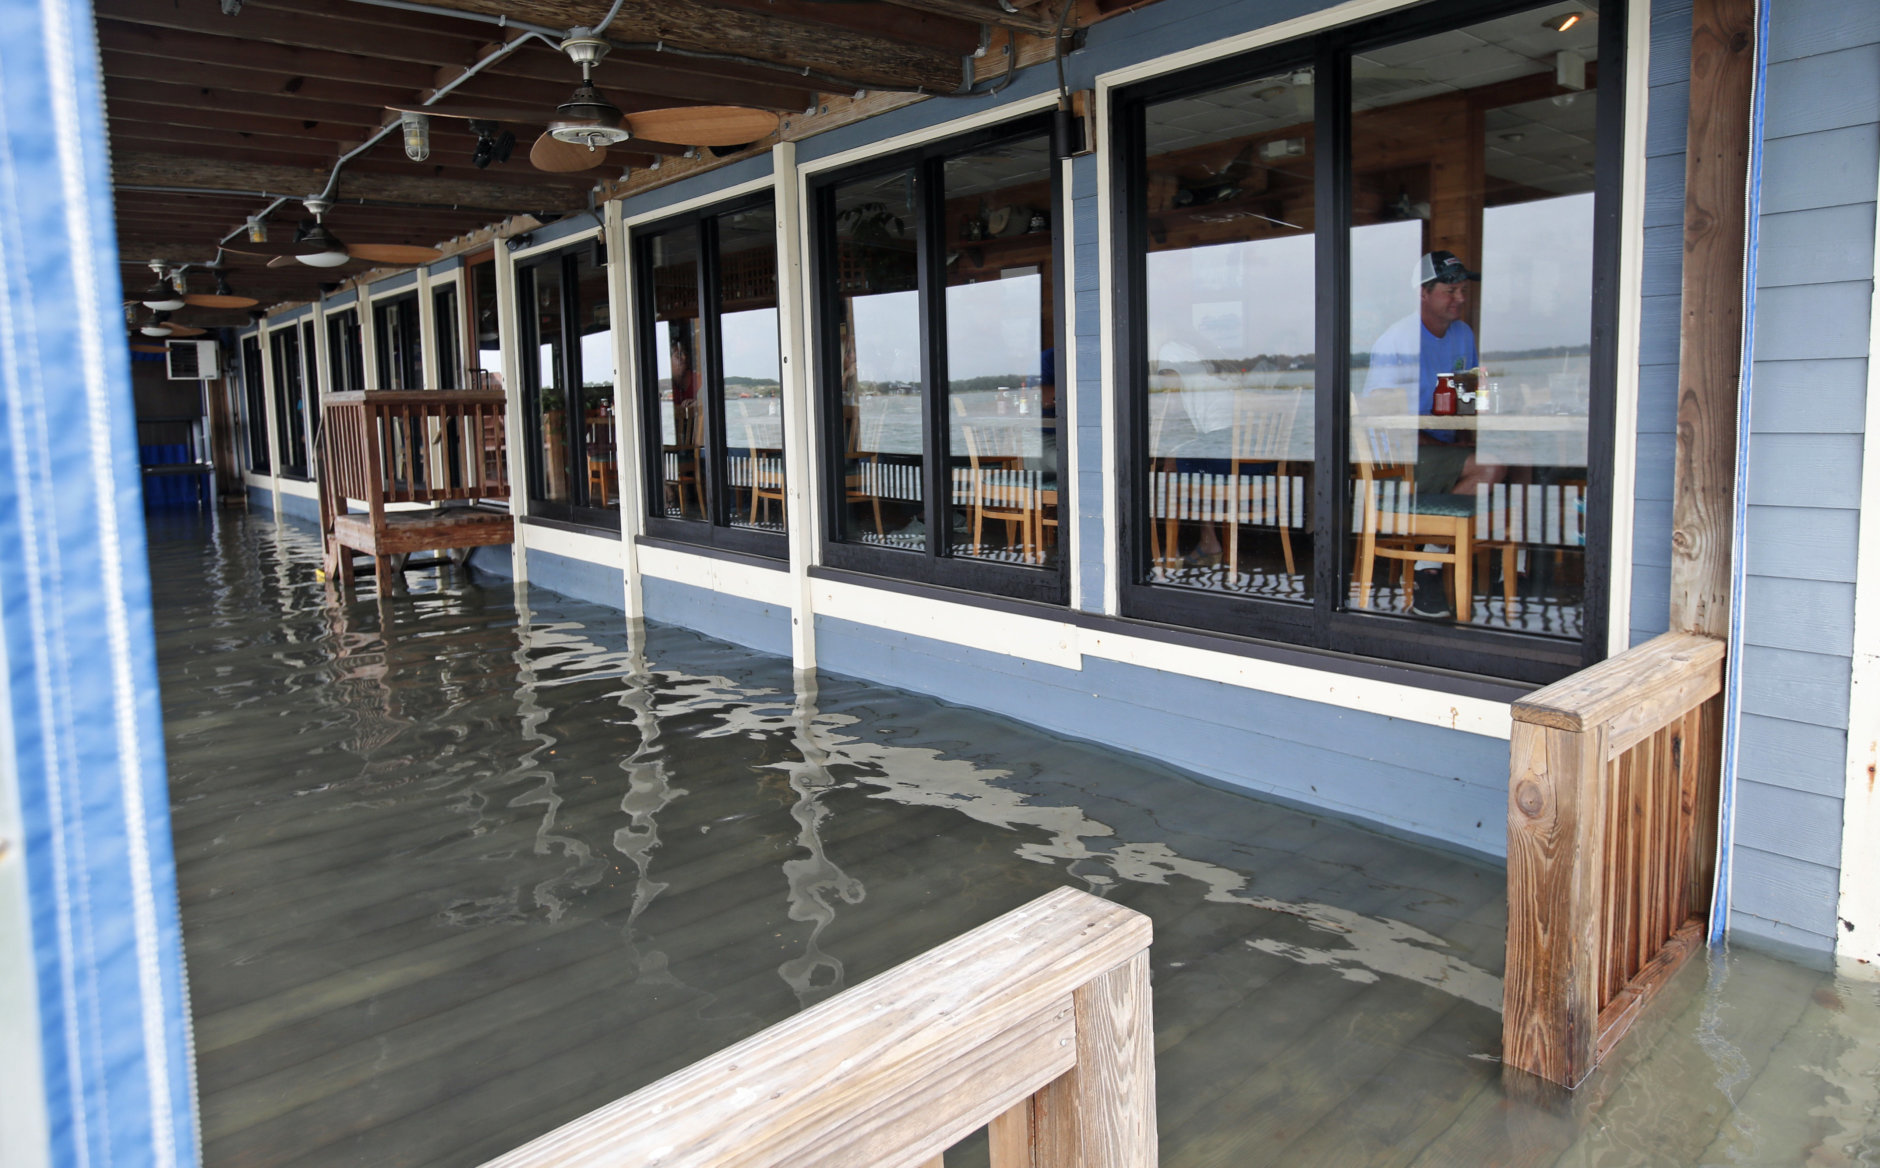 Sean Hayes, right, from Manteo, N.C., eats at Bubba's Seafood Restaurant with his family as the deck is covered with a few inches of water from effects of Hurricane Florence Friday, Sept. 14, 2018, in Virginia Beach, Va.  (AP Photo/Alex Brandon)